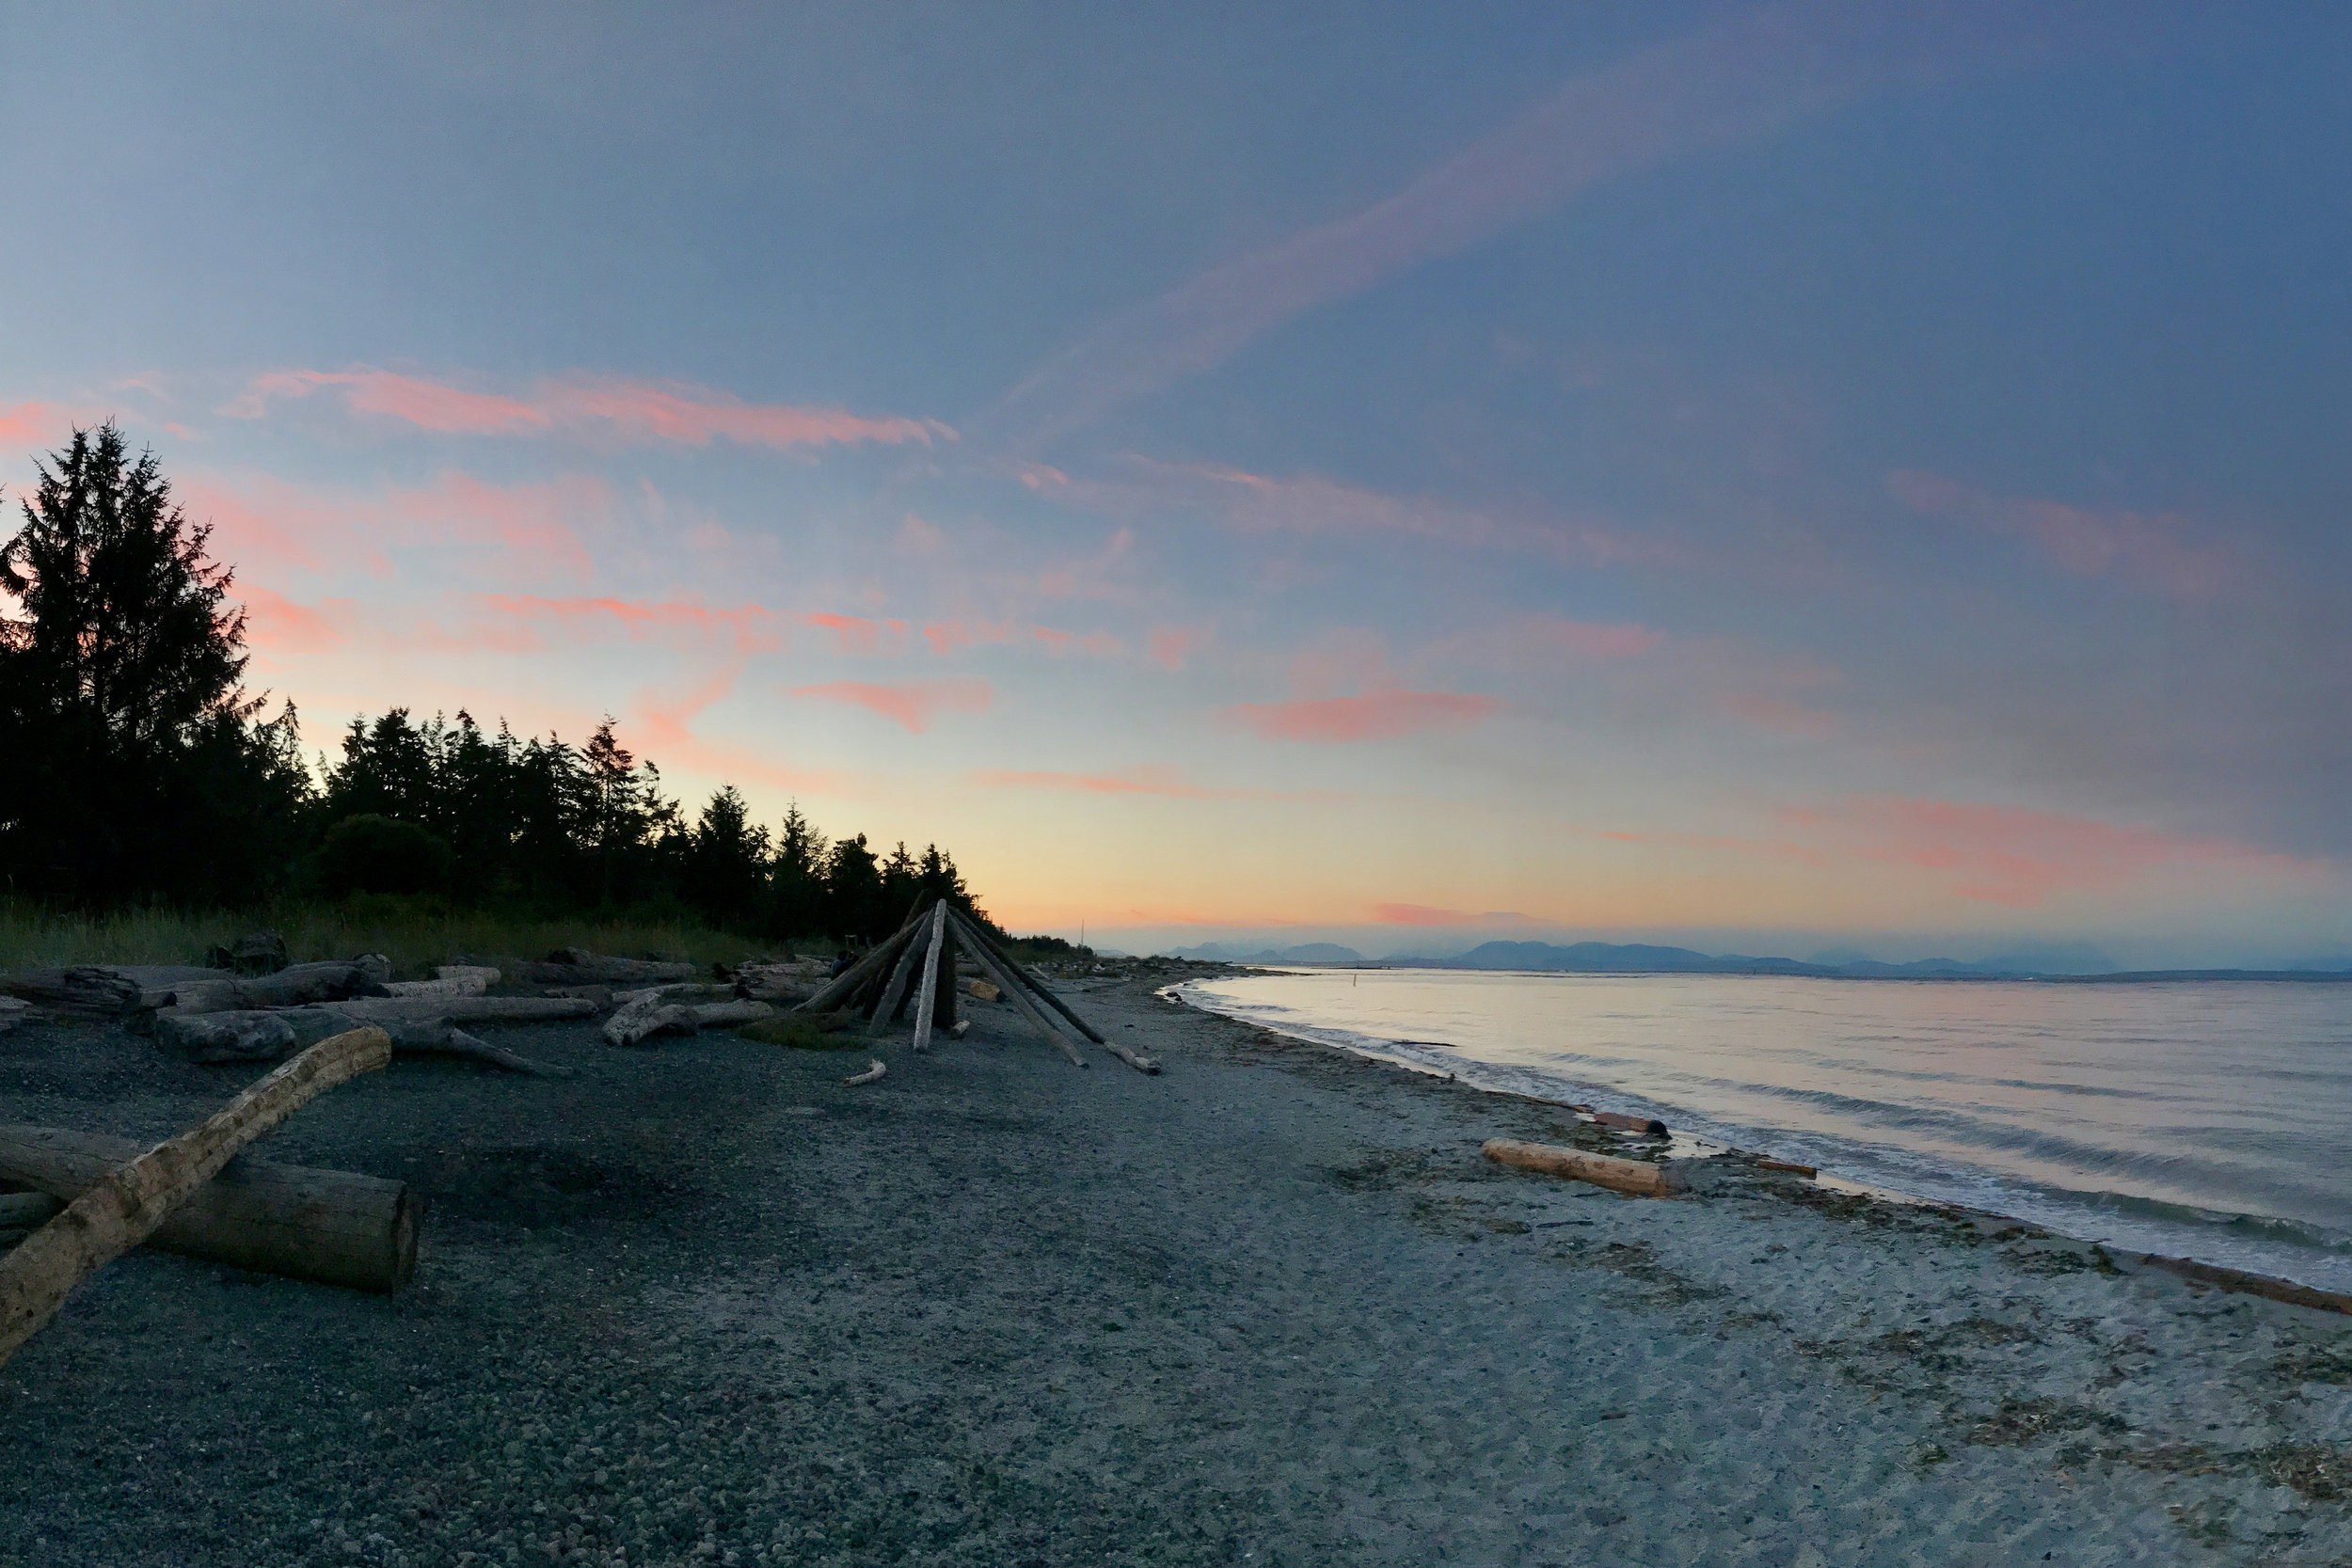 Sunset on the beach - Vancouver Island BC